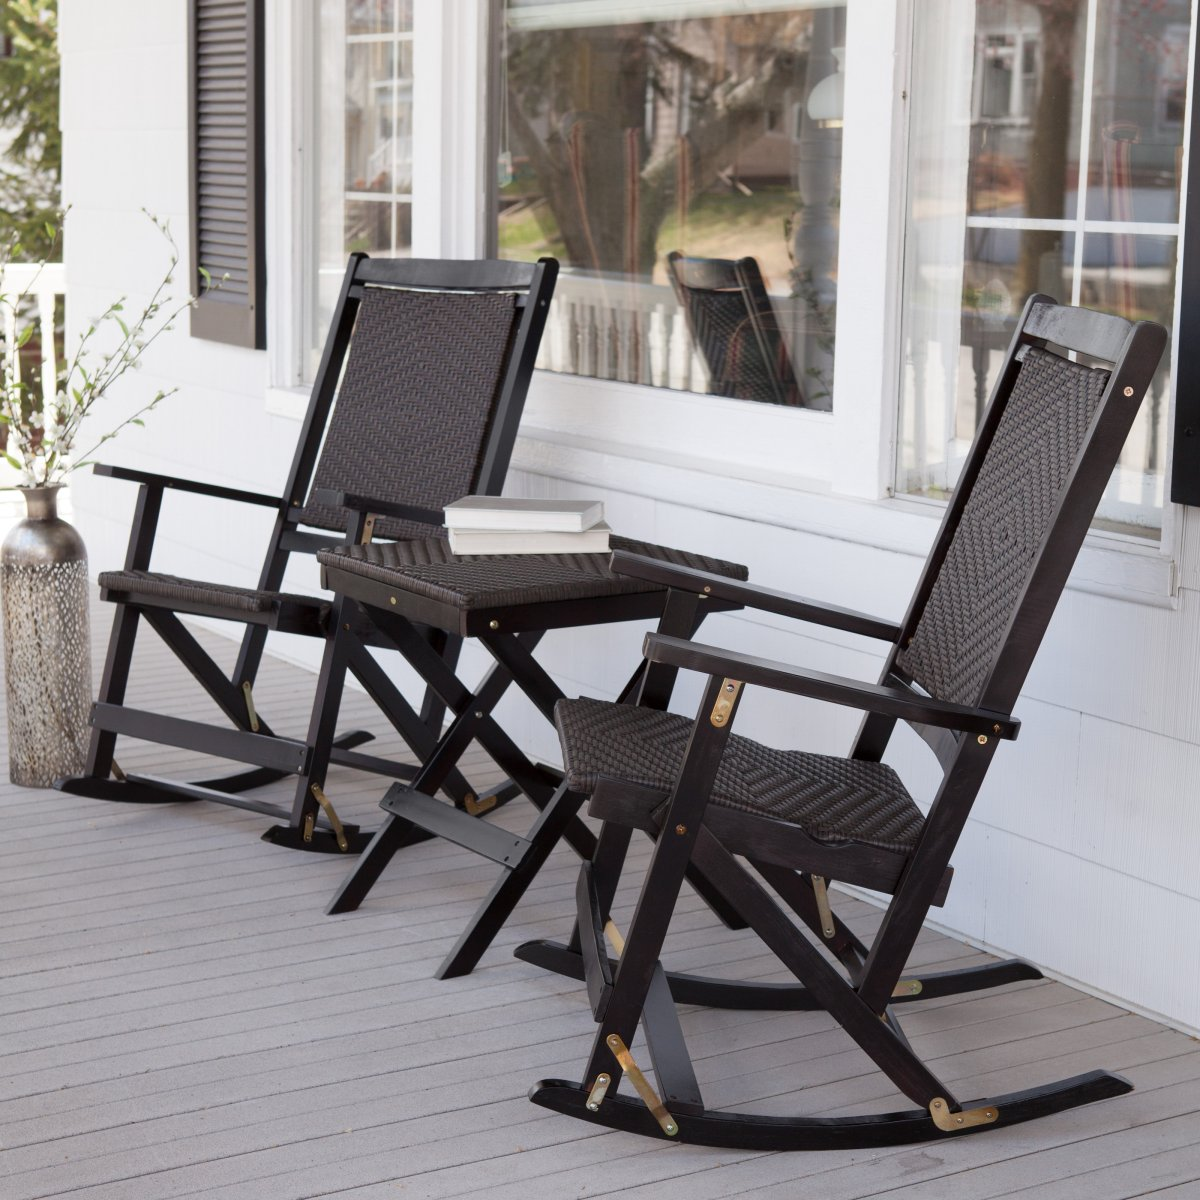 Image of: Picture of Outdoor Rocking Chair